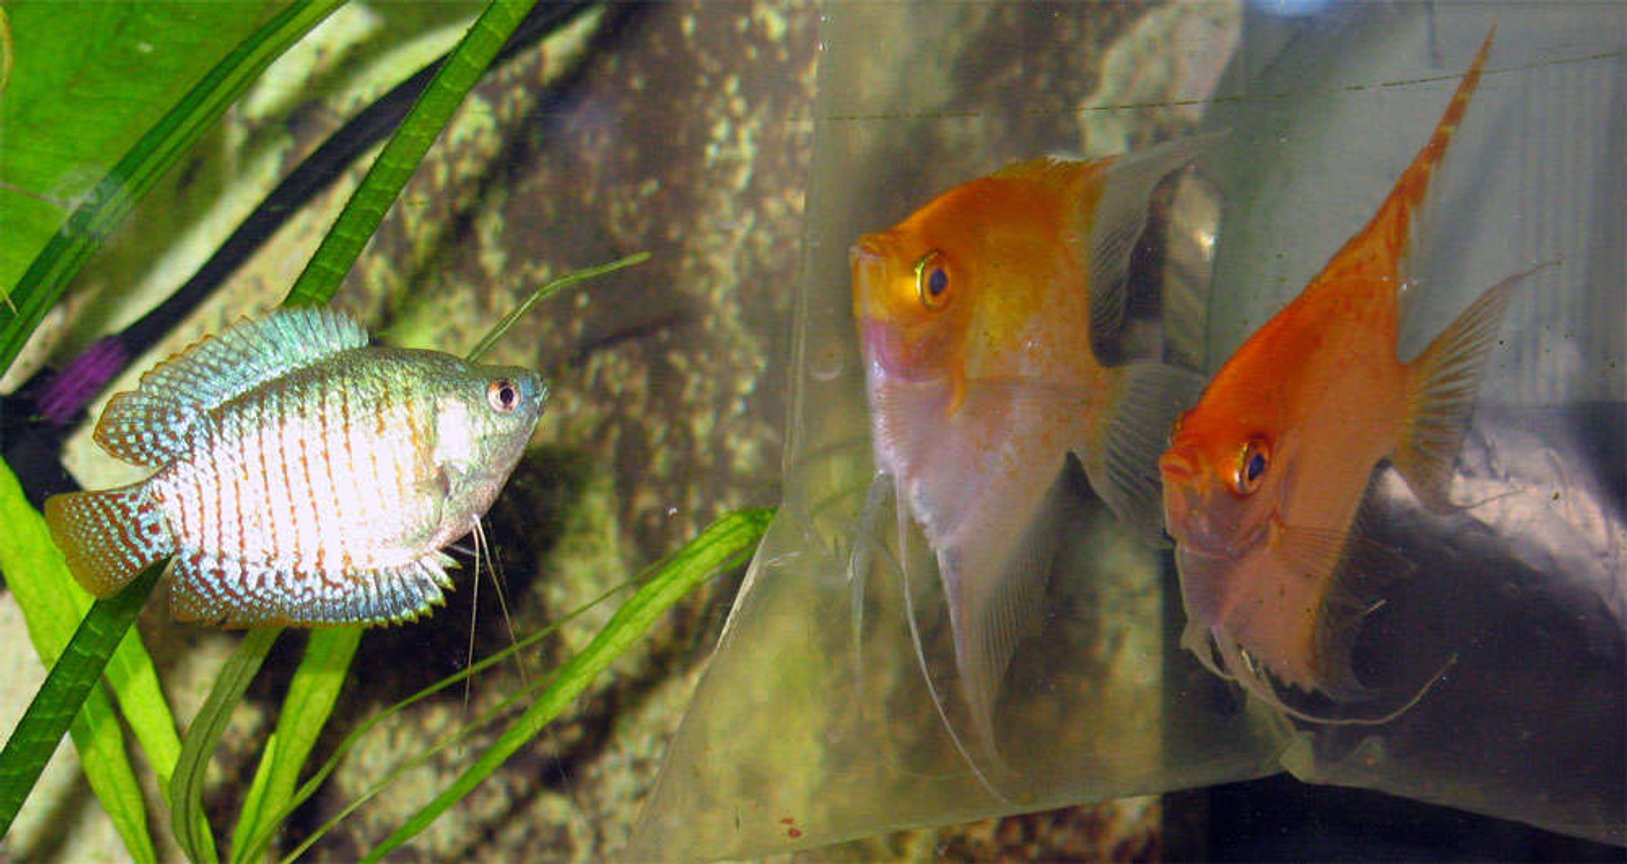 freshwater fish - colisa lalia - dwarf gourami stocking in 26 gallons tank - New friends for gaurami. I was afraid, they might fight. But no problems until now.